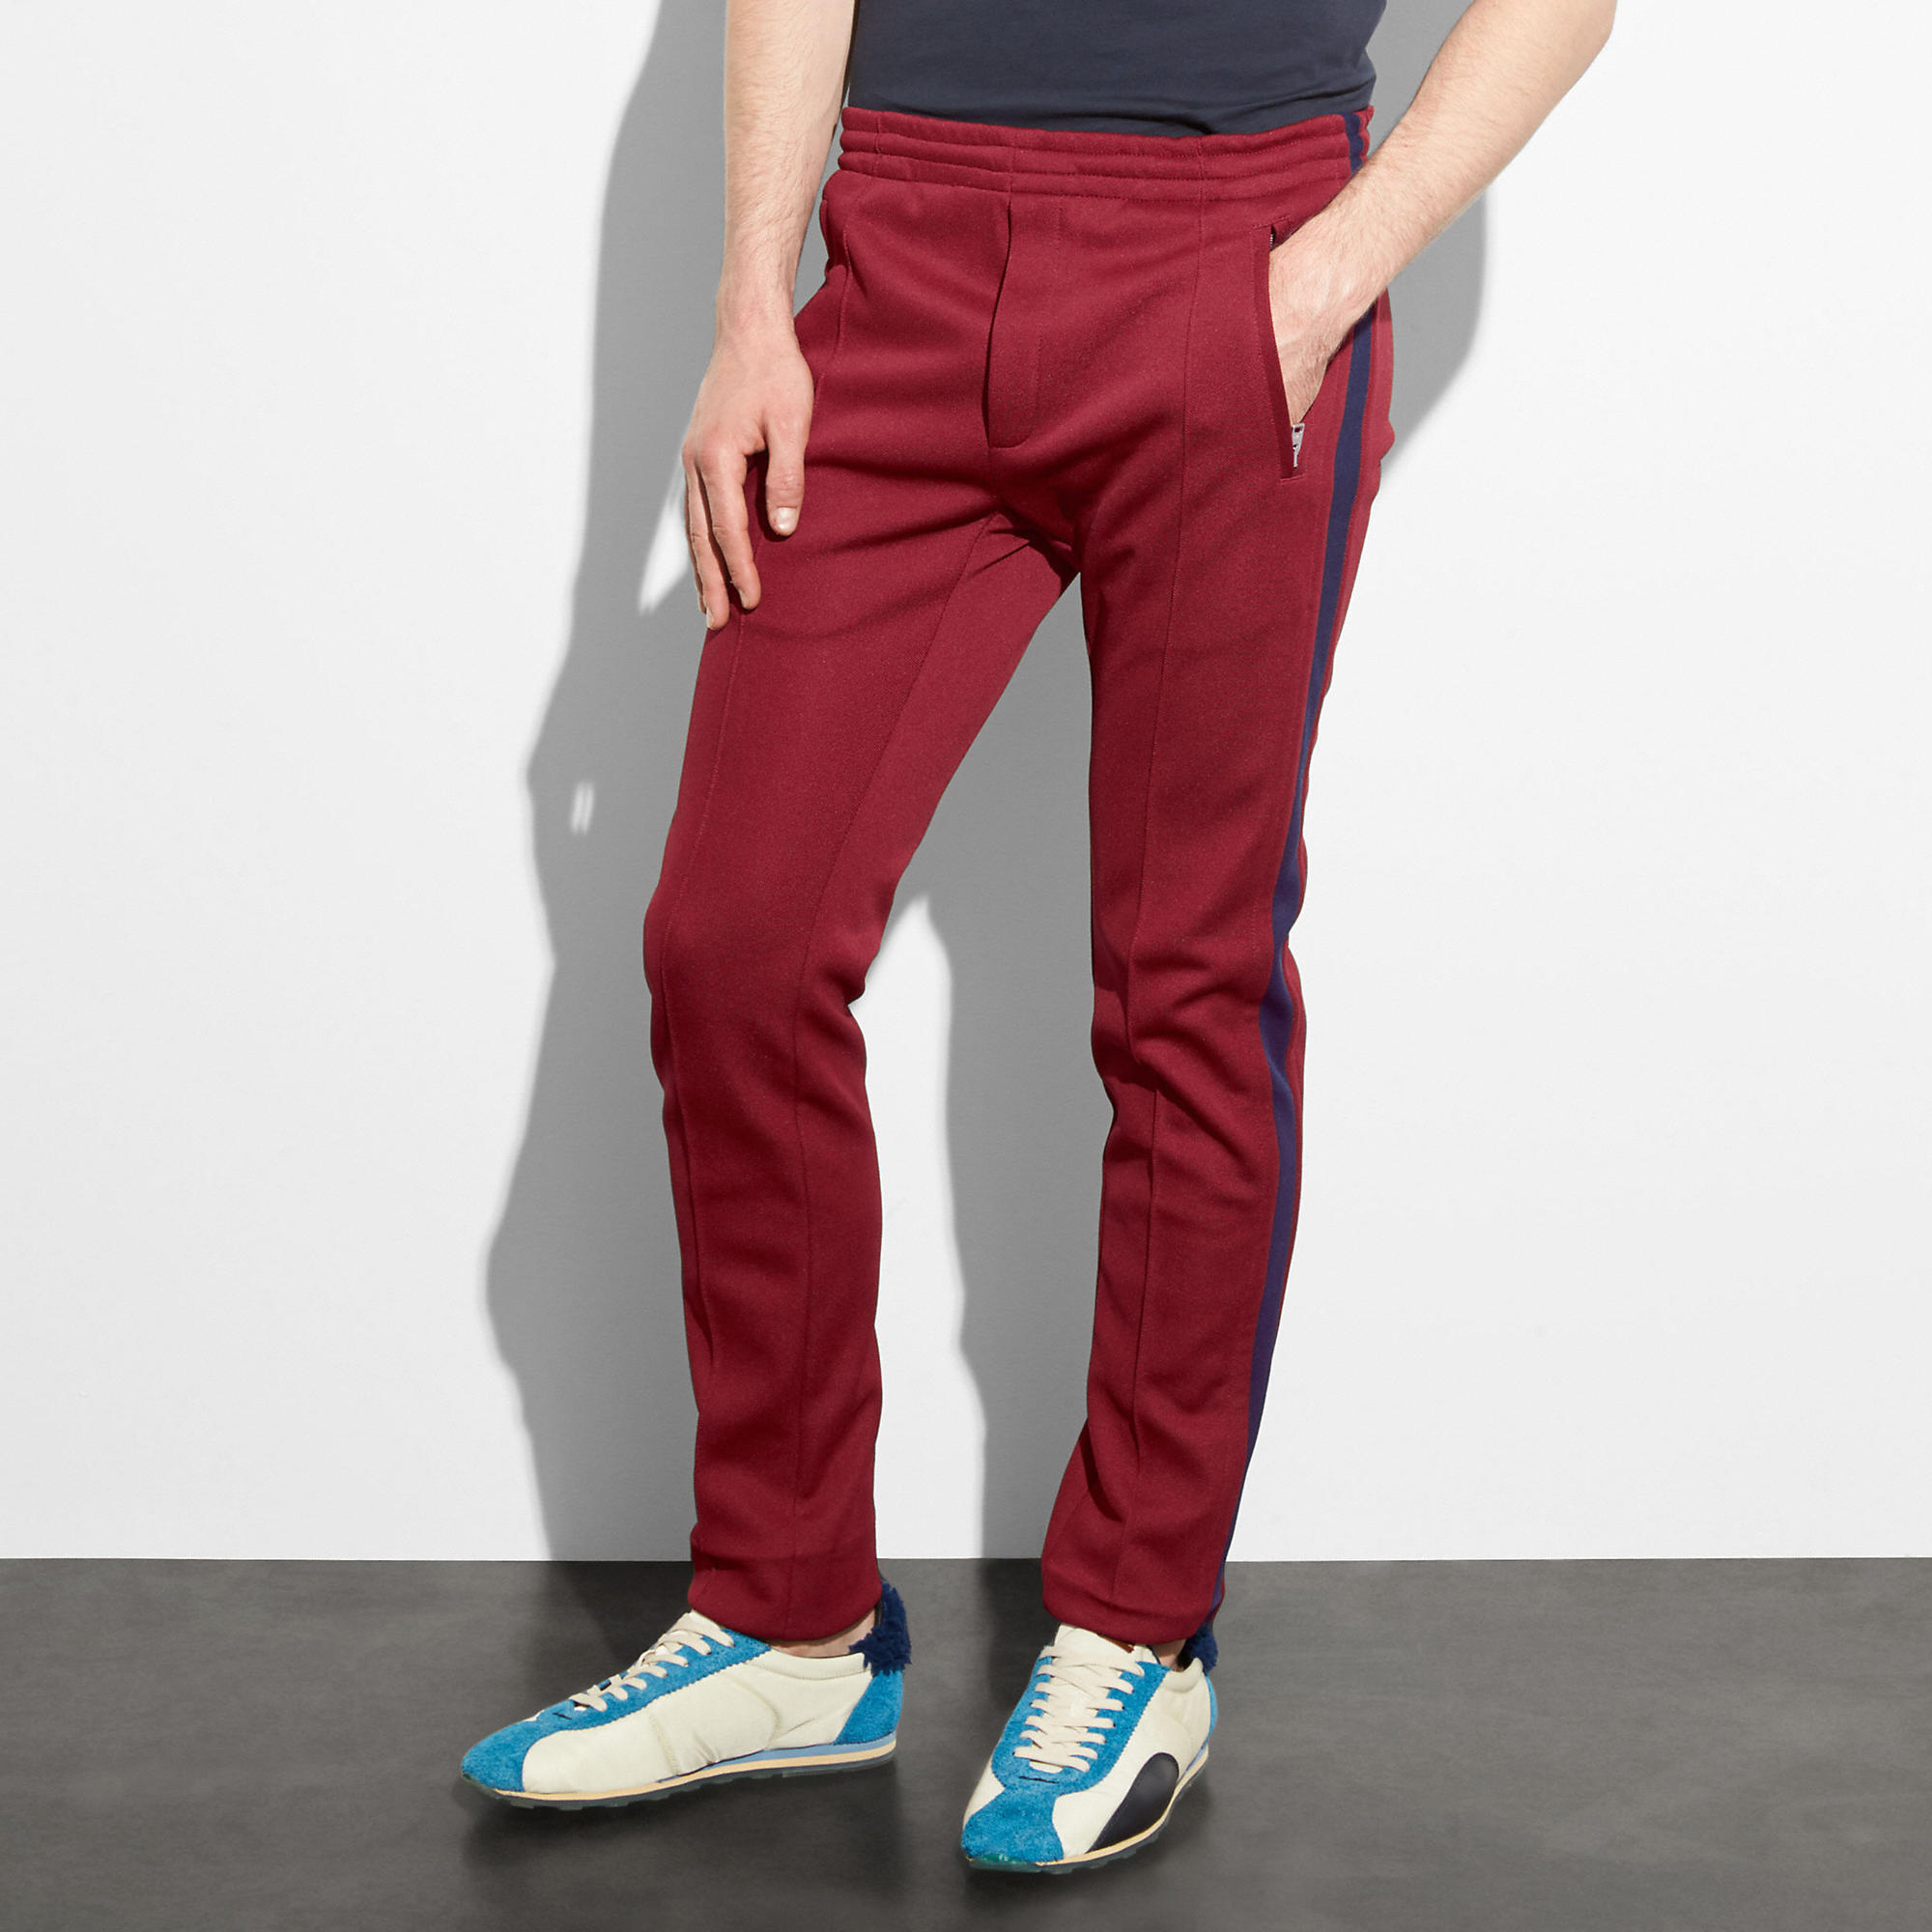 Coach Track Pants In Wine